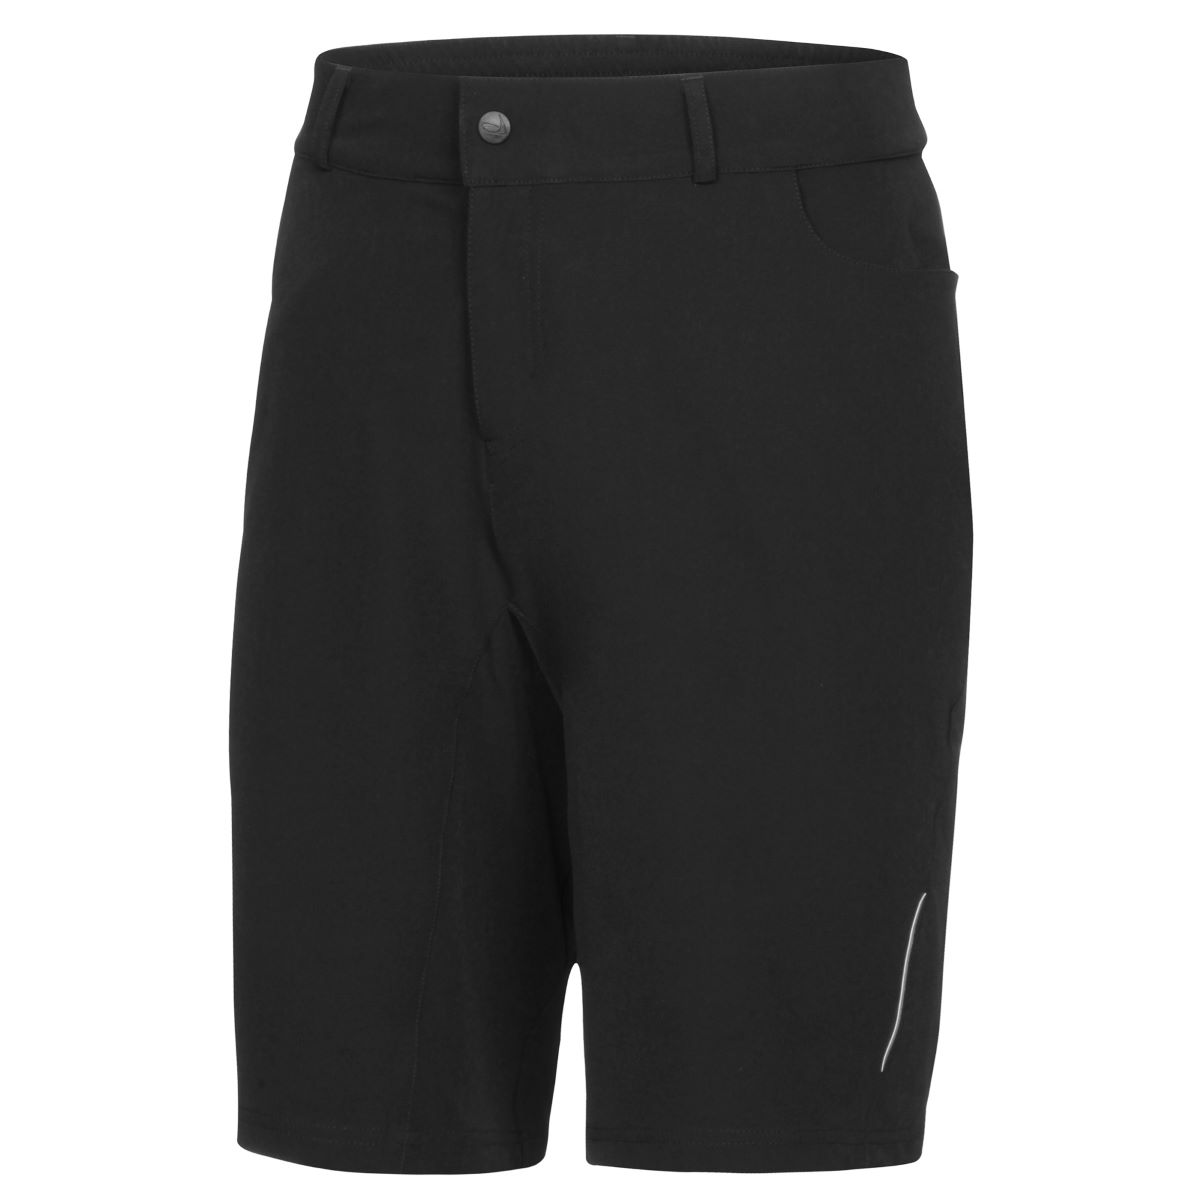 Short baggy dhb - Extra Large Noir Shorts VTT